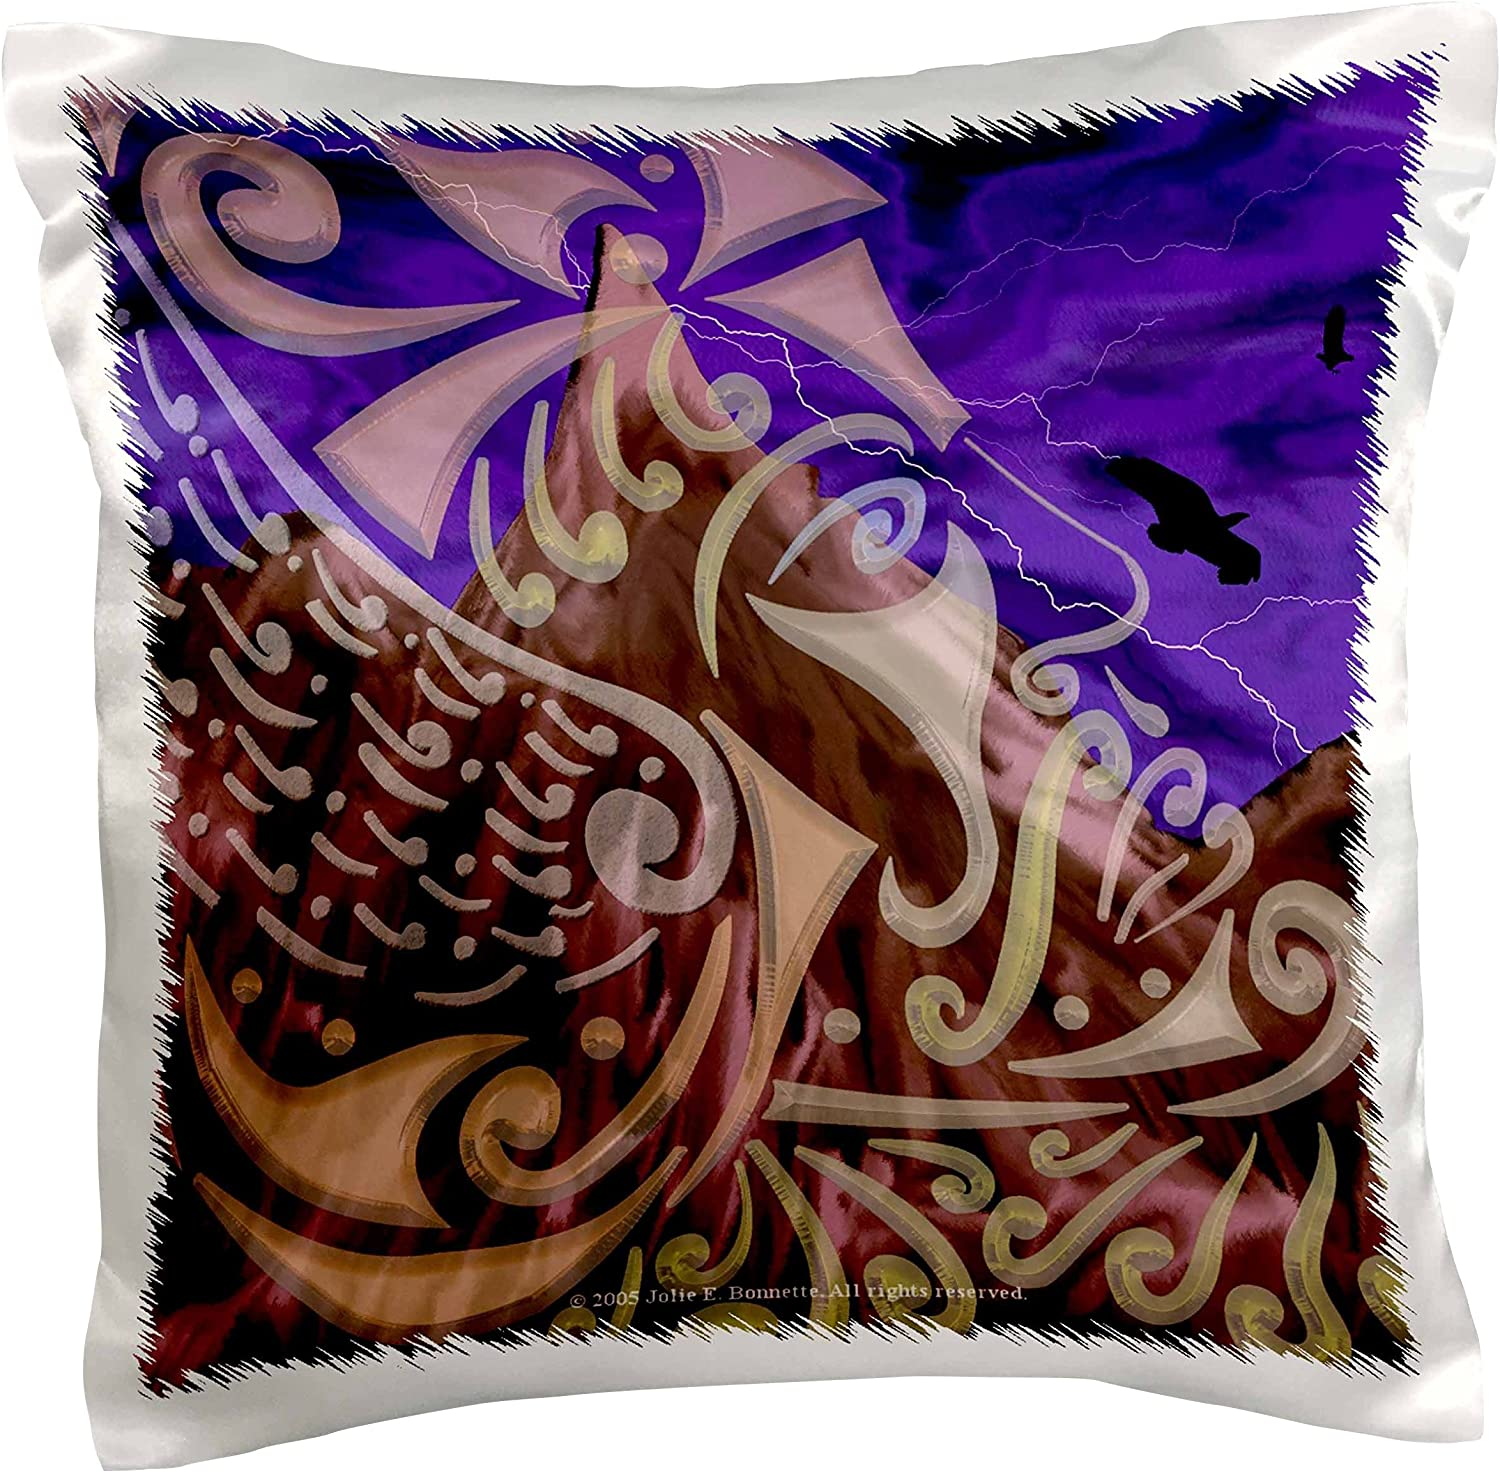 3drose Pc 23199 1 Thor Mythology Tribal Abstract Norse Pagan Asatru Pillow Case 16 By 16 Arts Crafts Sewing